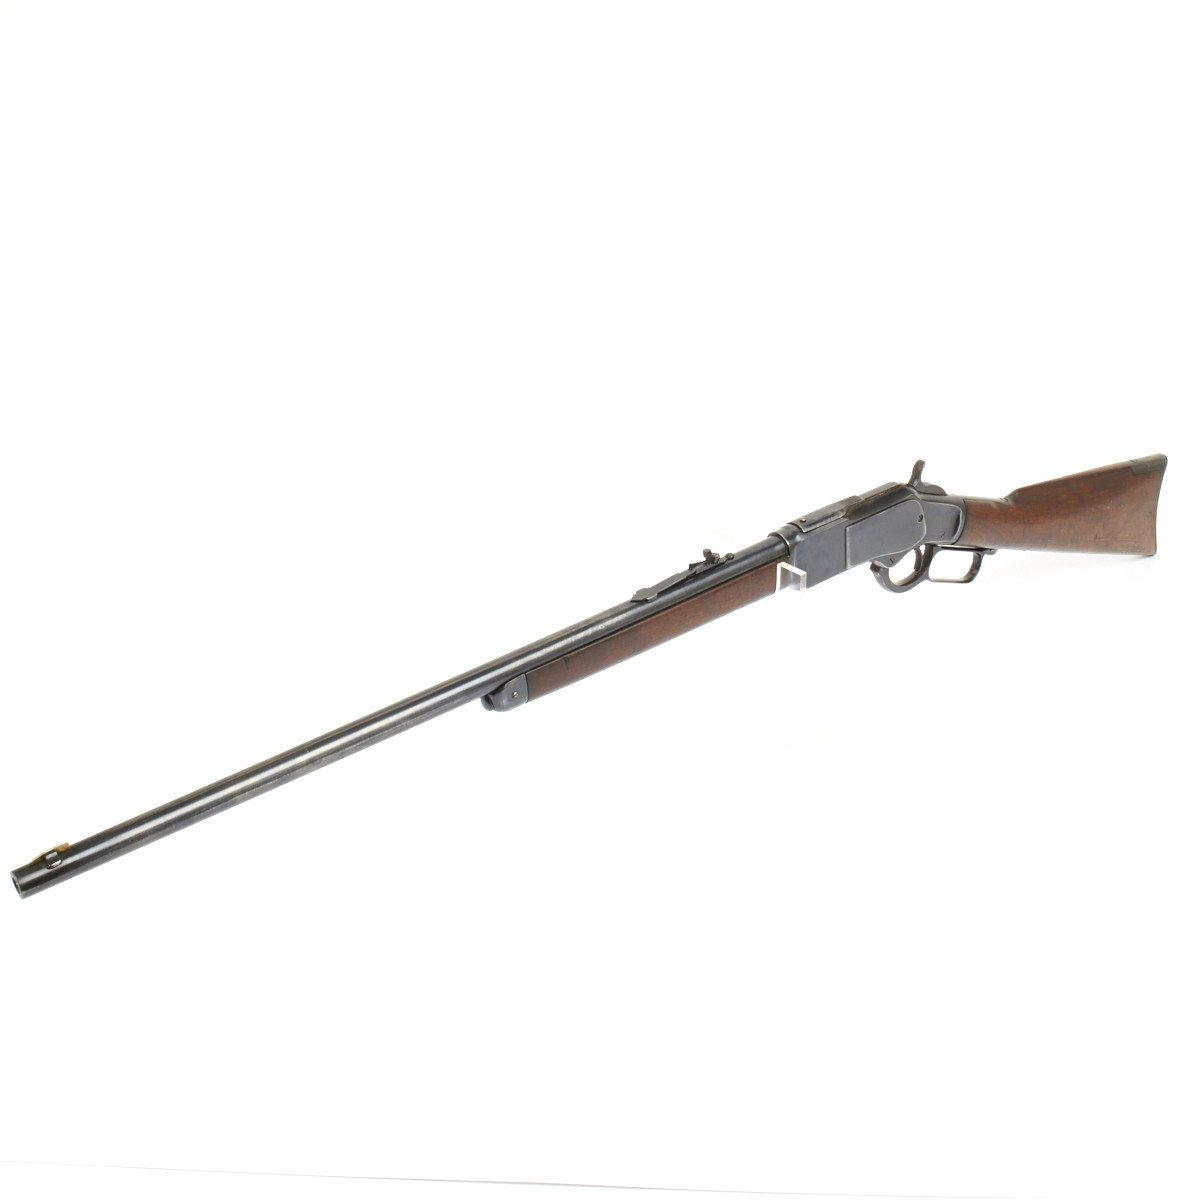 Original U S  Winchester Model 1873  38-40 Rifle with